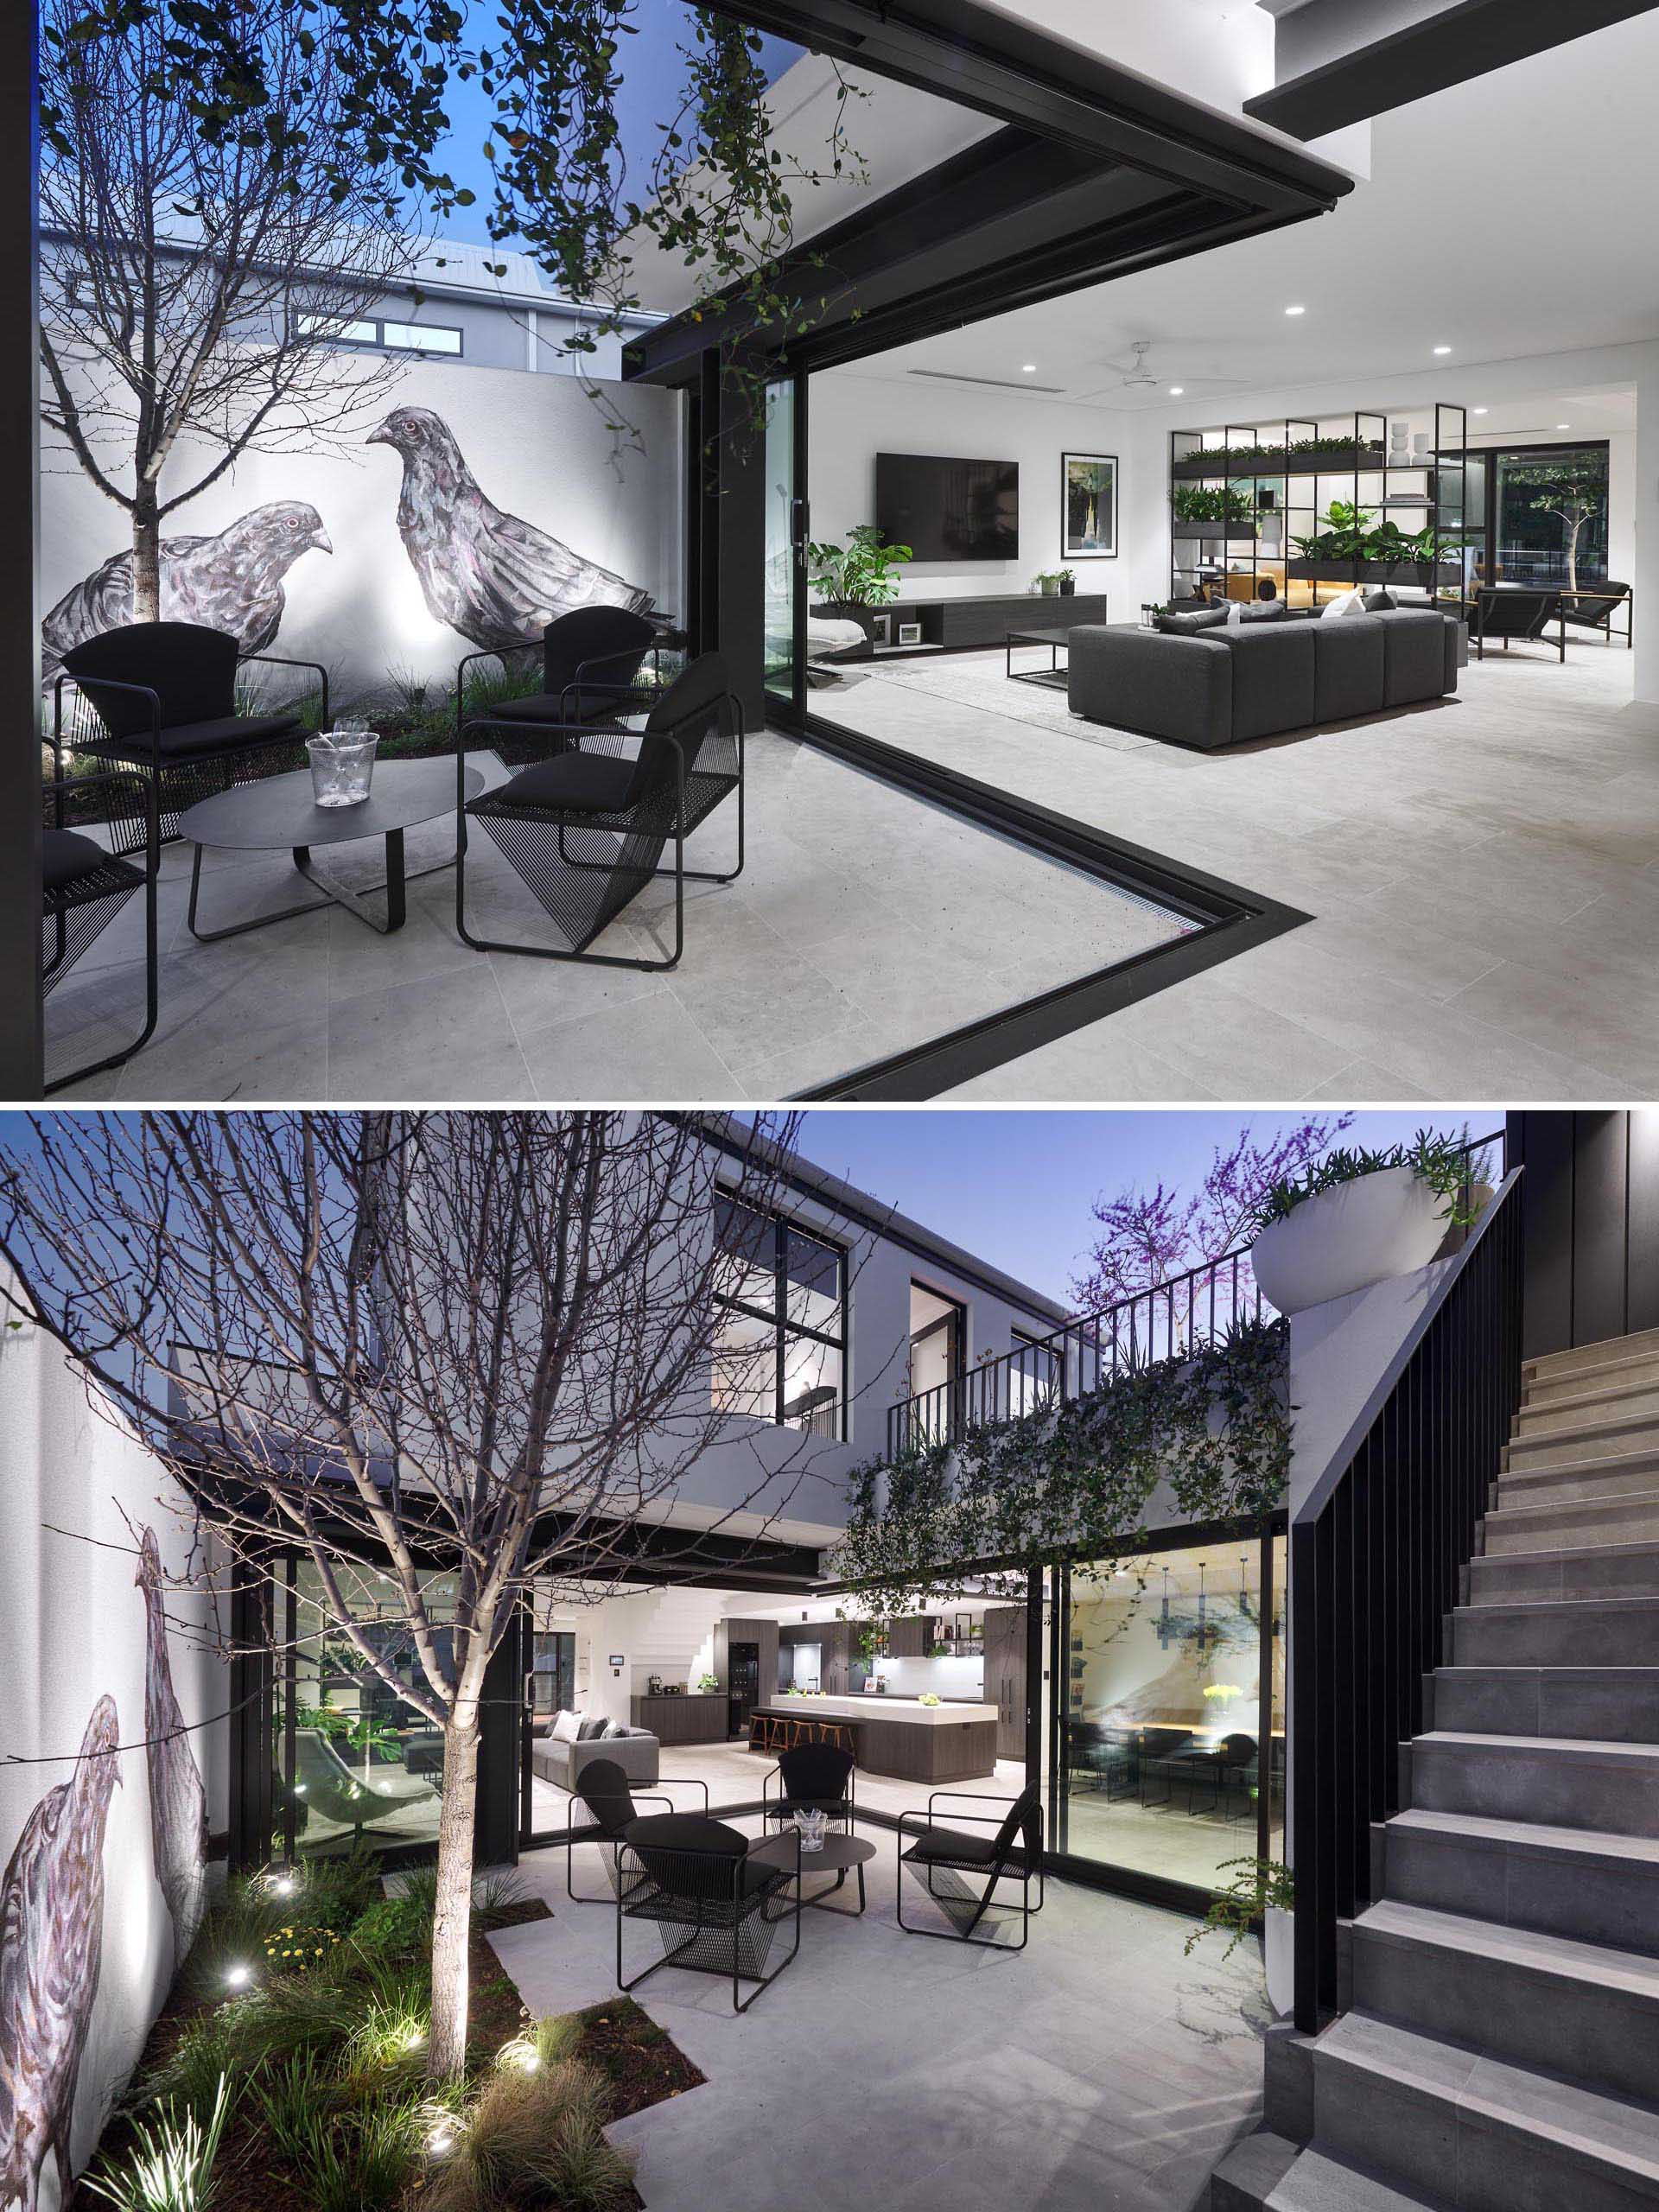 A modern house with a courtyard that's furnished with four sculptural chairs and a small round table. On the wall is a large mural of birds that adds an artistic touch to the space.